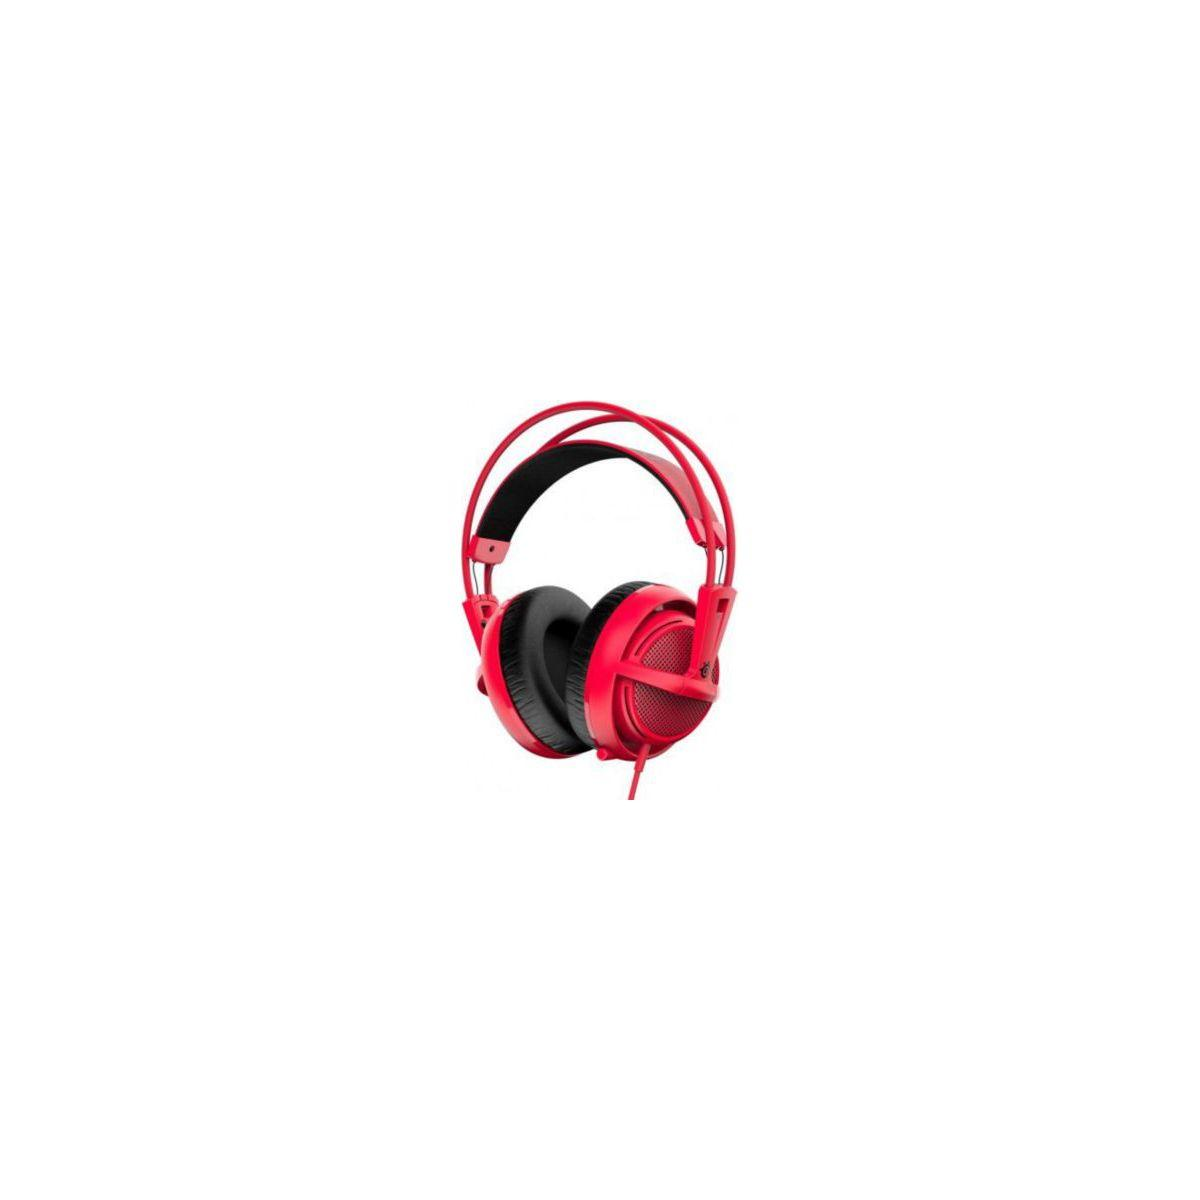 Casque micro gamer steelseries siberia 200 forged red (photo)